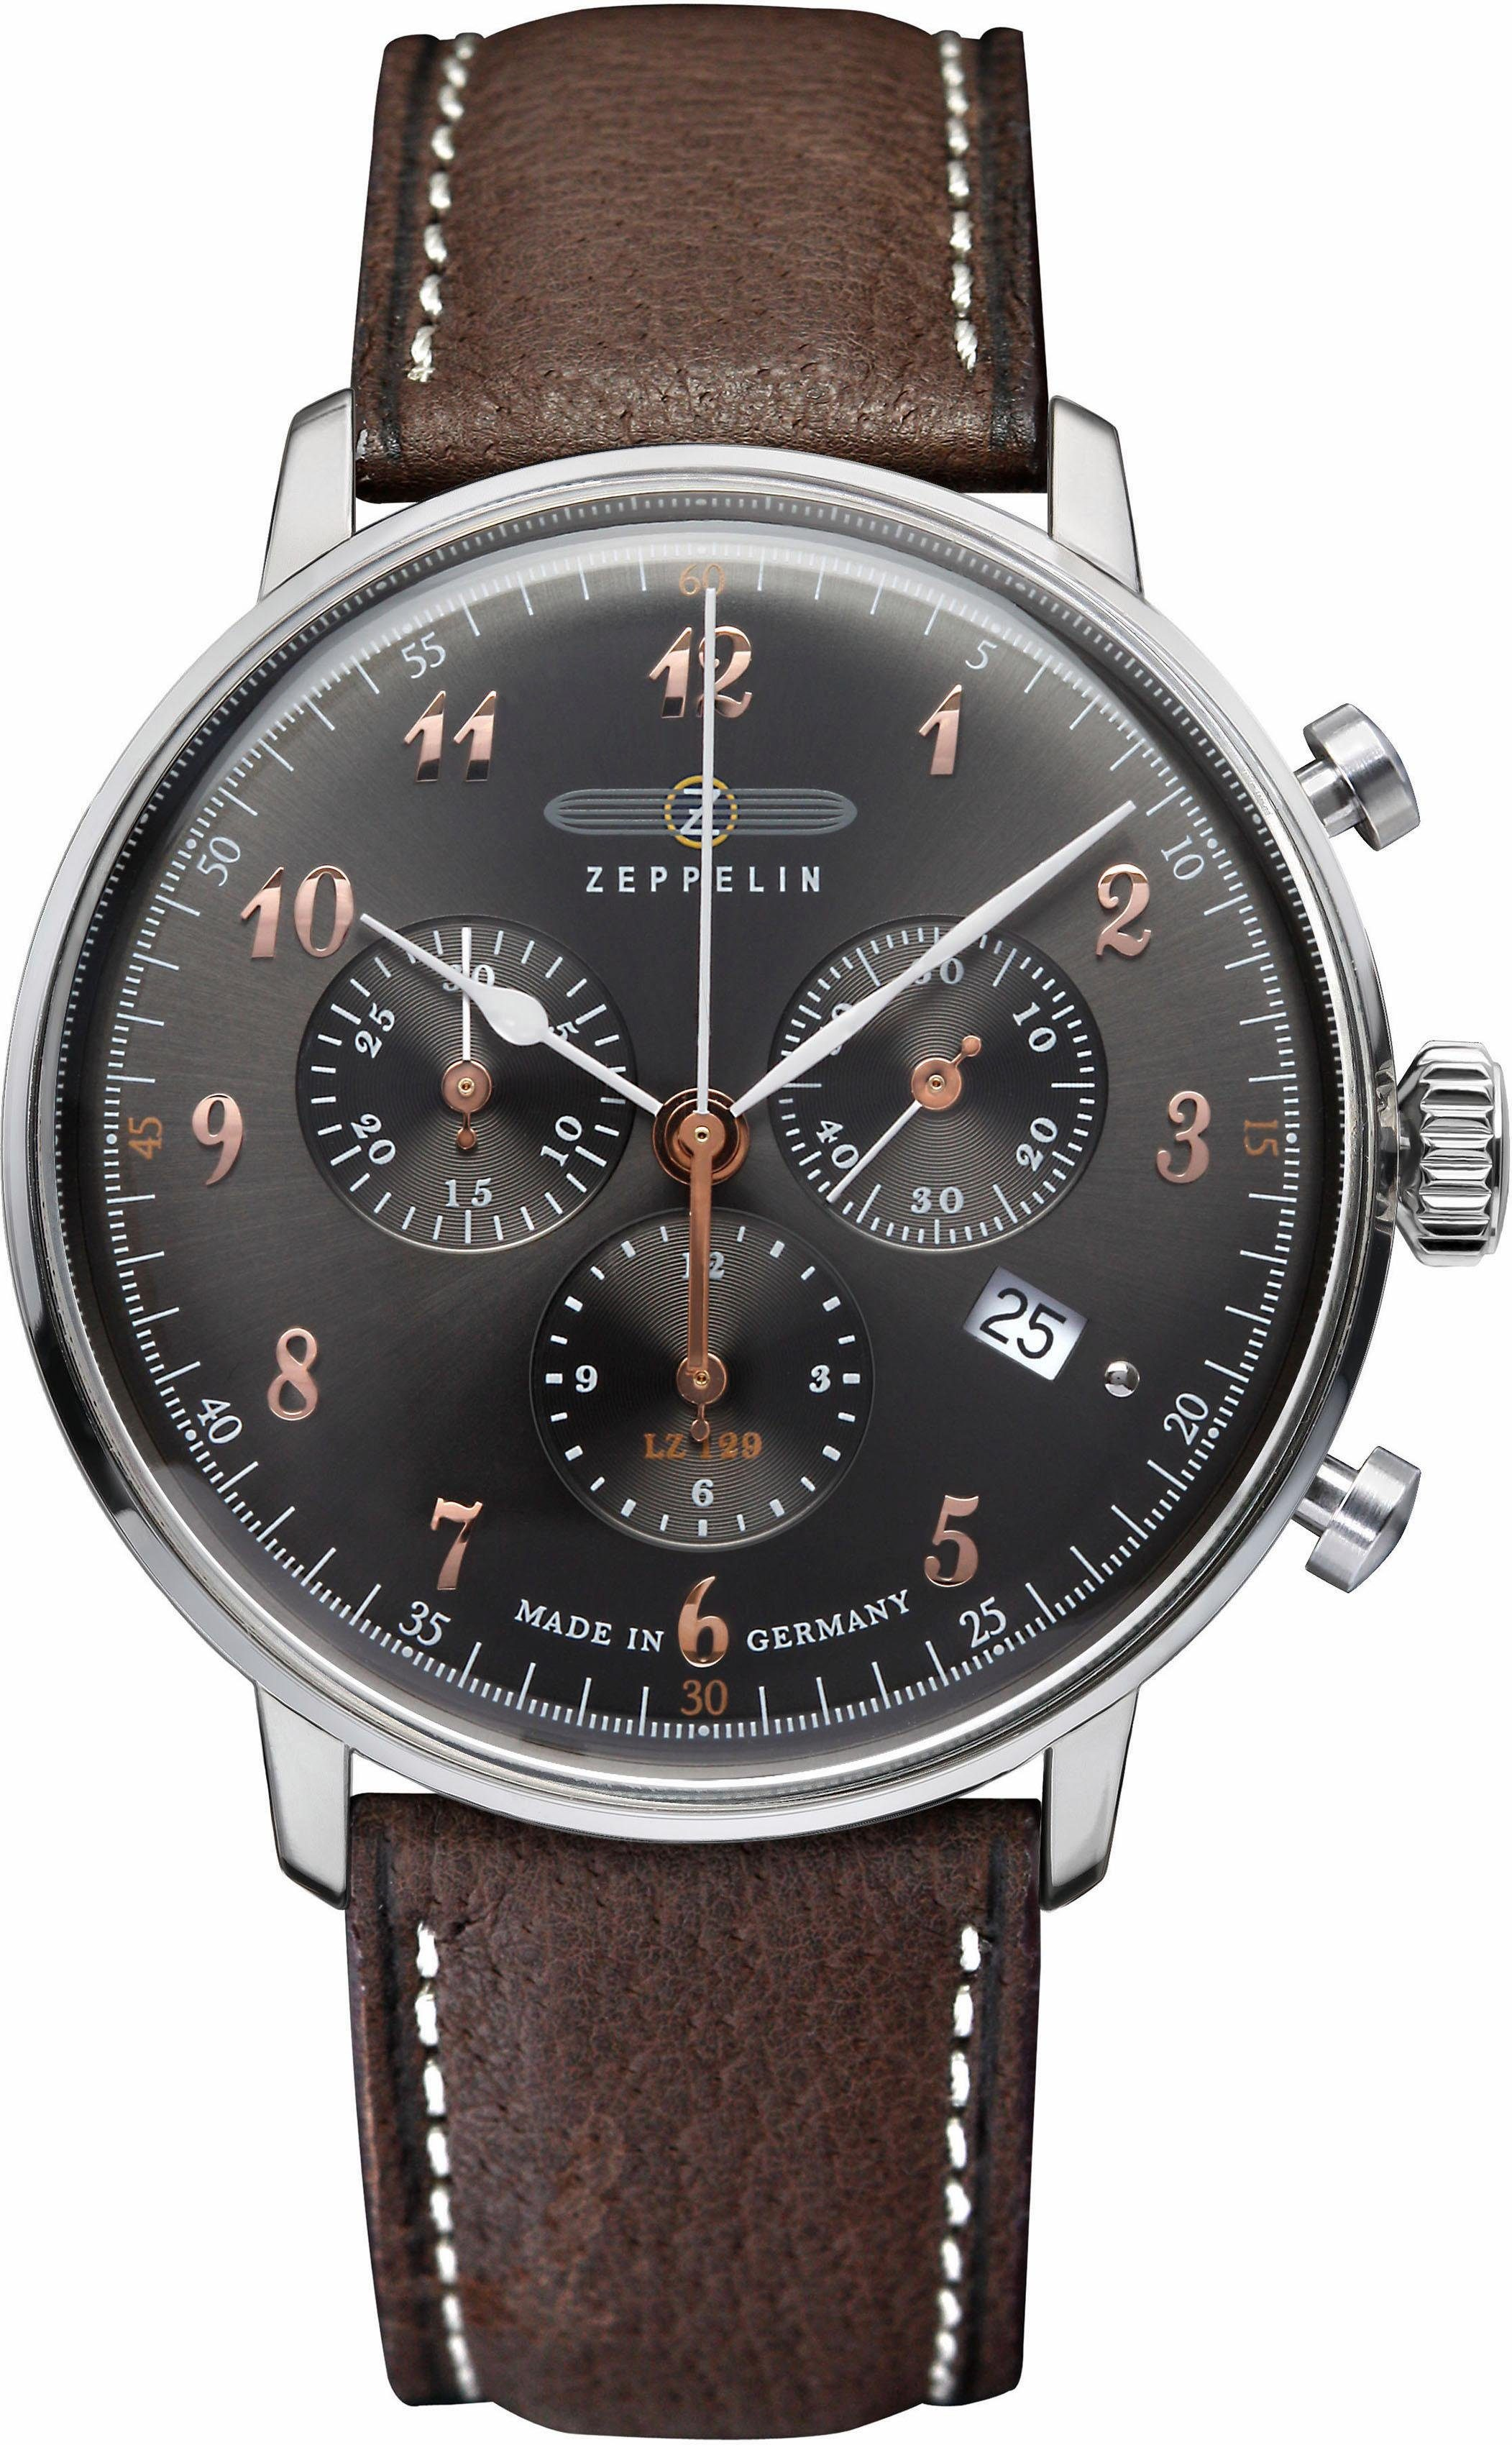 ZEPPELIN Chronograph »LZ 129 Hindenburg, 70882«, made in Germany